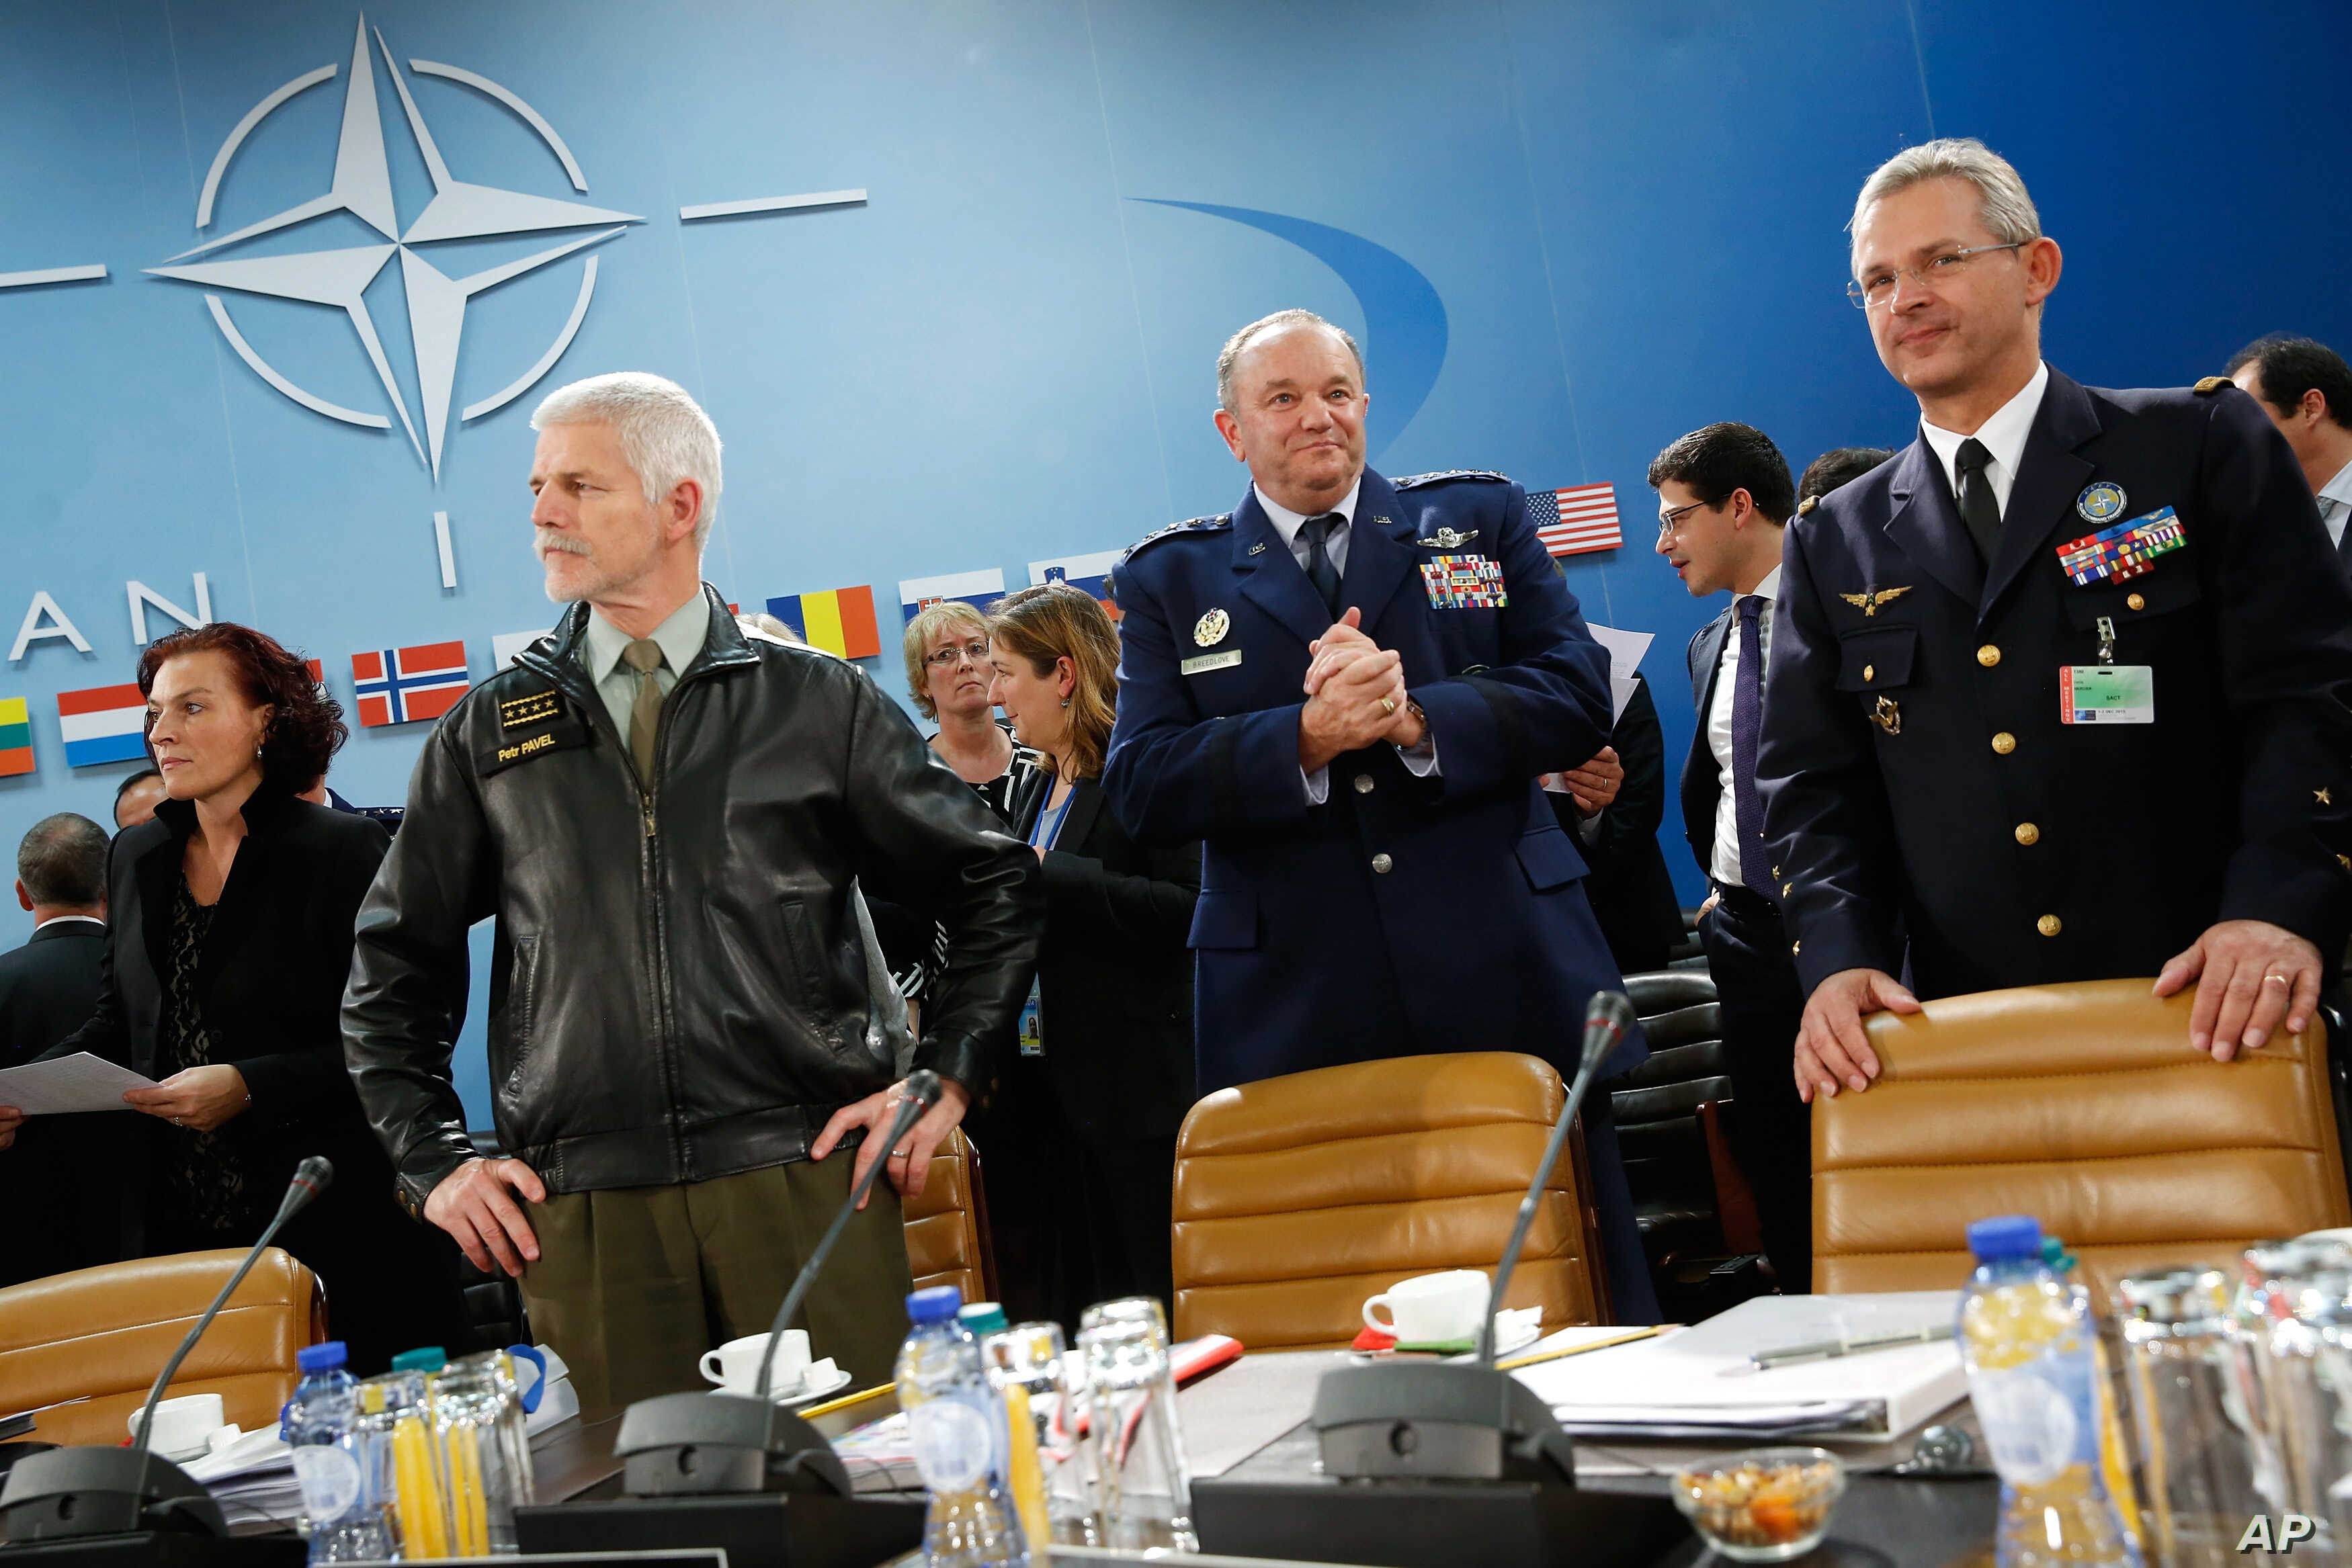 NATO commanders await the start of the NATO Ministerial Meeting on the South, Partnerships, and Defense Capacity at NATO Headquarters in Brussels, Dec. 1, 2015.